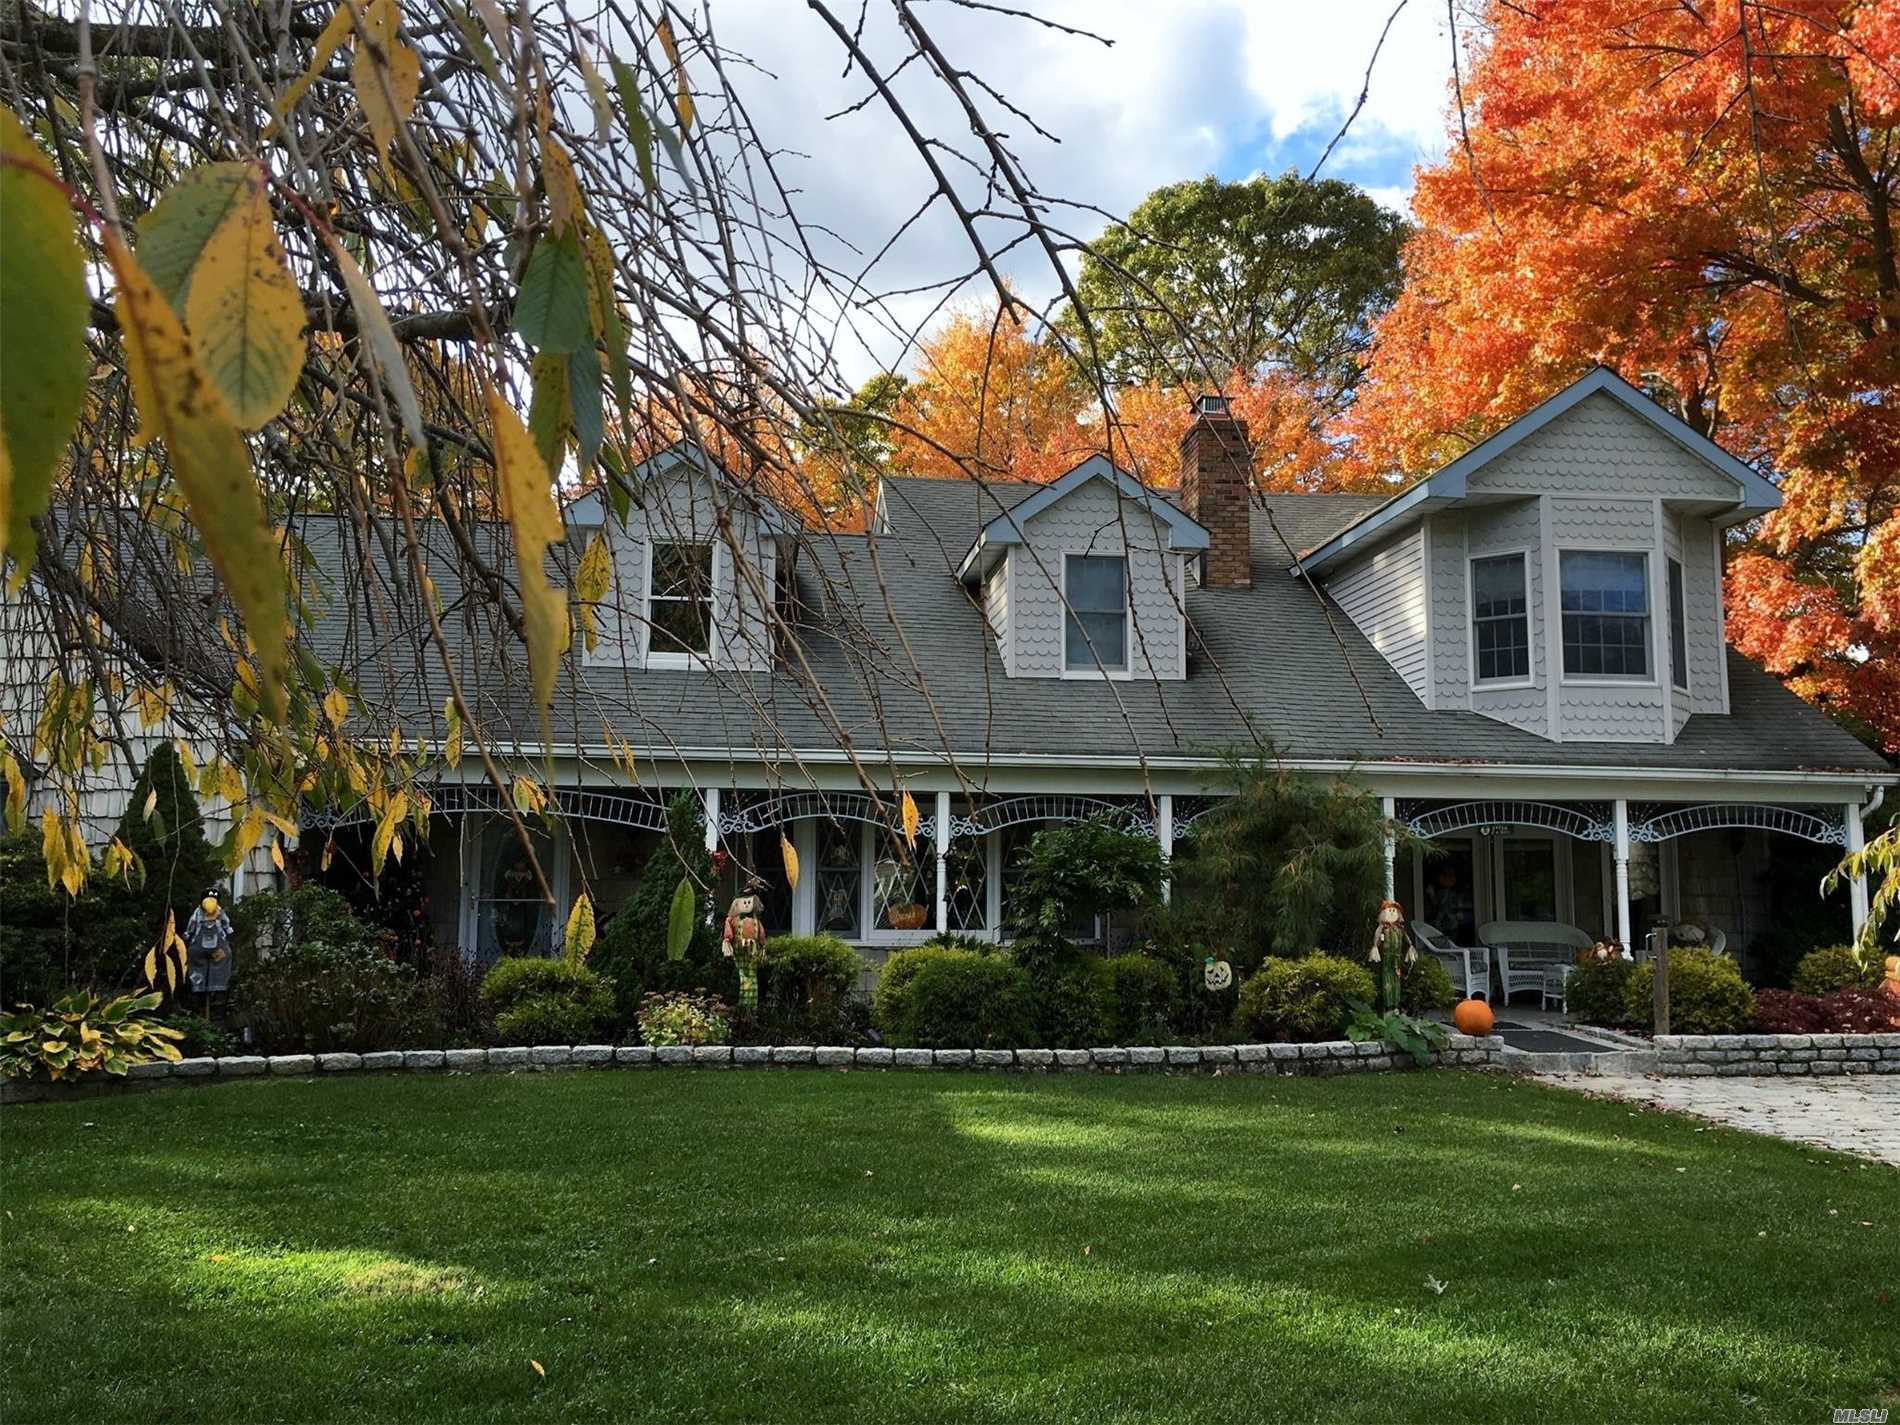 Magnificent 4400 Sf Farm Ranch On Cul-De-Sac In Desirable W Section...Spacious Rooms Through Out Each Level, Flr, Fdr, Den, Eik, 5 Fireplaces, Master Suite W/ Bath & Multiple Closets And A Balcony Overlooking The Park Like Backyard, Featuring Gunite Igp With Pavers, Gazebo, Rose Garden. This Home Has Room For Everyone To Manydetails To List (See Attach)